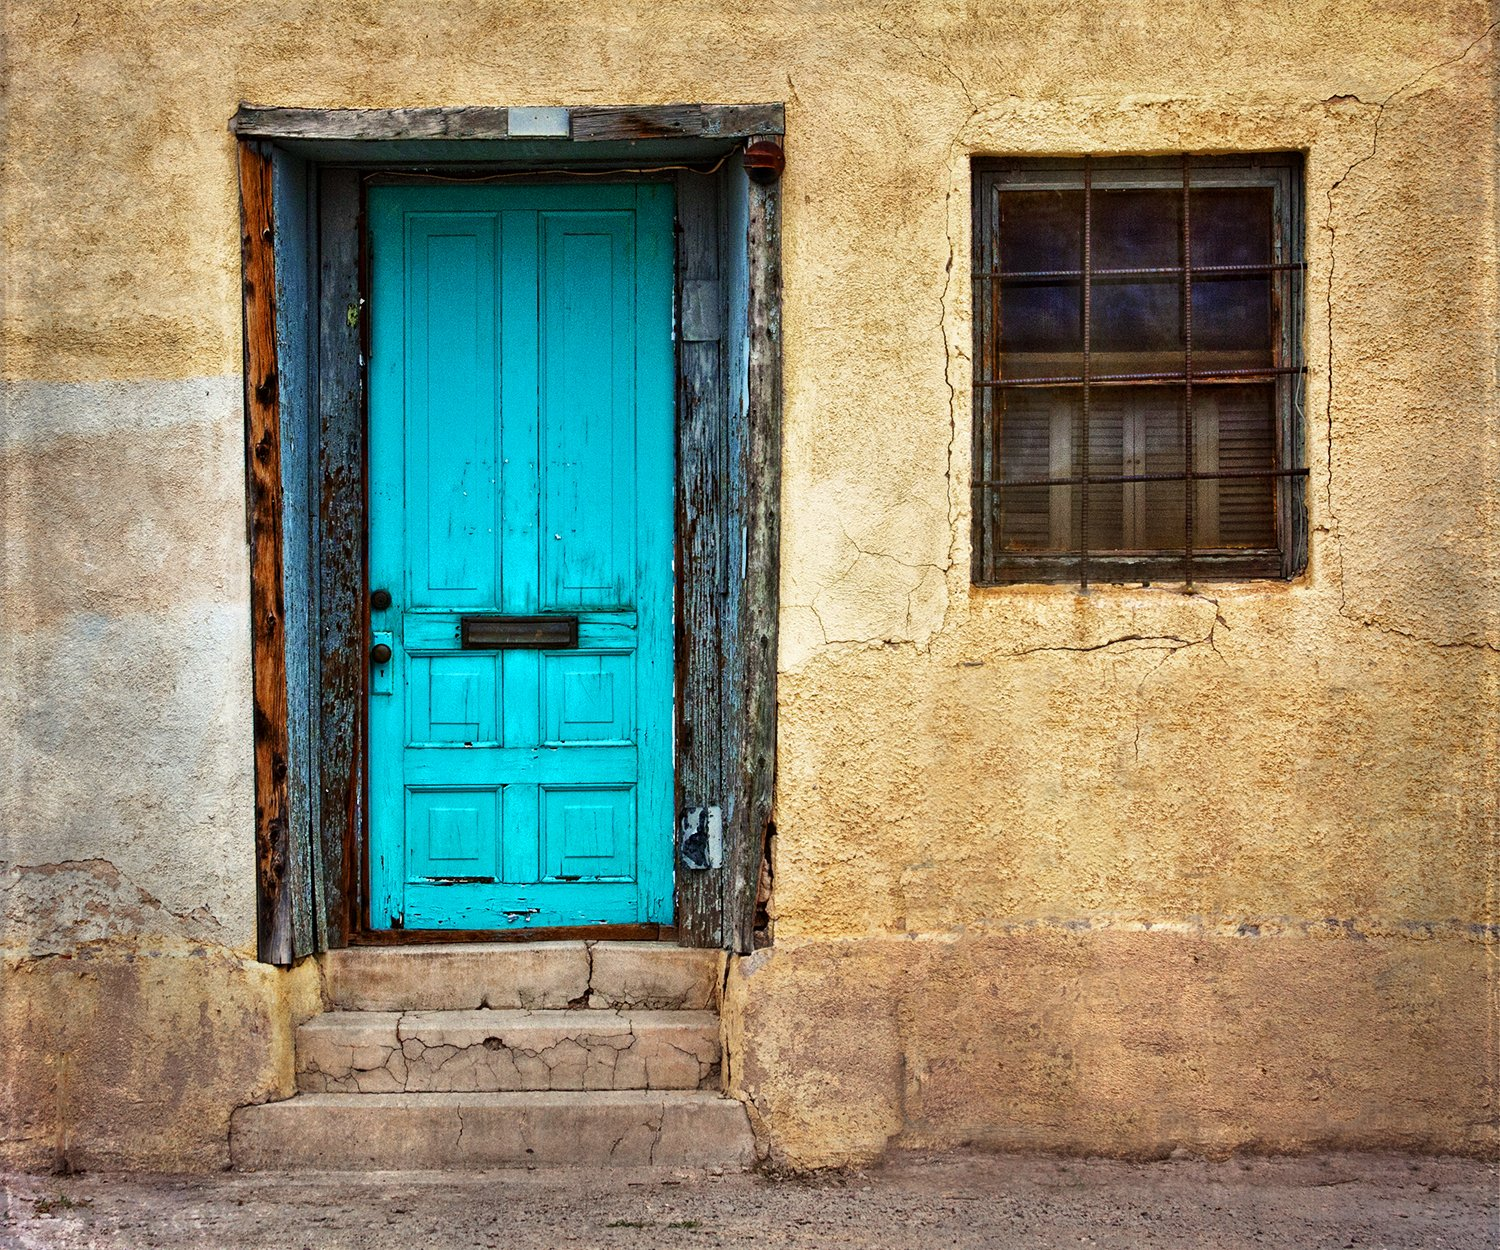 doors, Tucson, barrio, architecture, welcome, entry way, door, turquoise